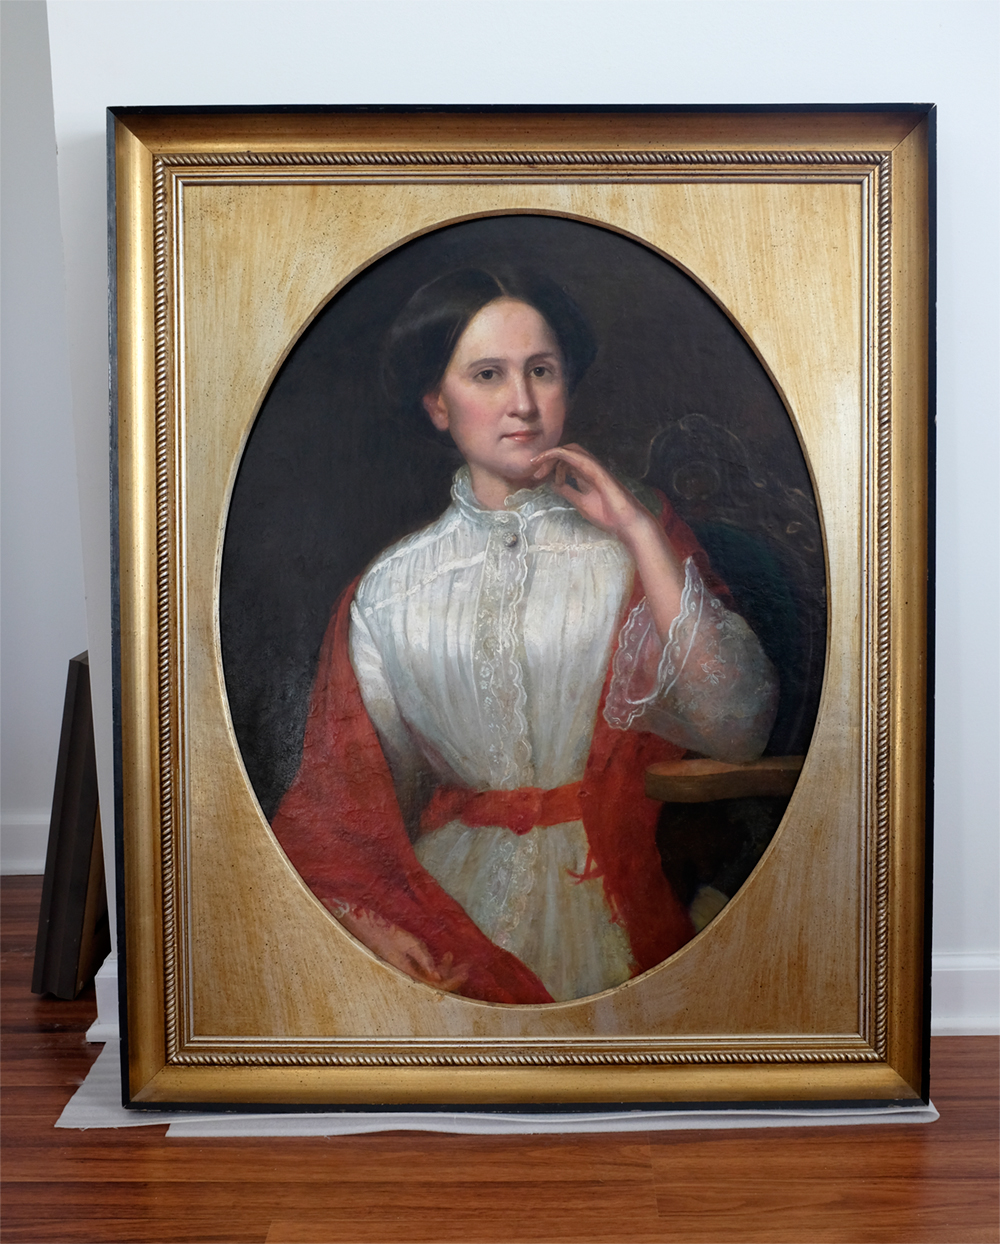 Elegant portrait painting fully restored and framed